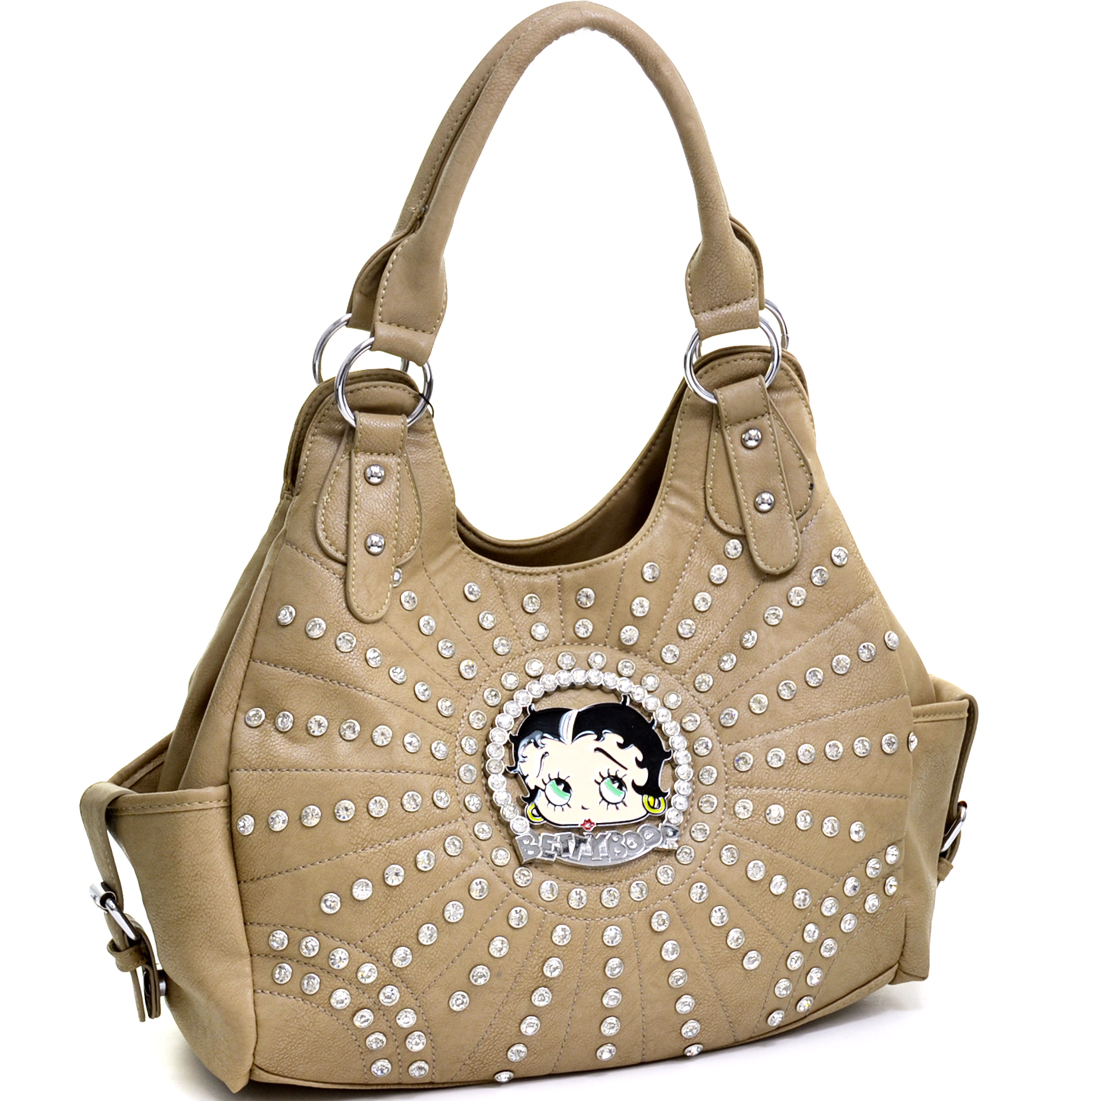 Betty Boop Rhinestone and Multi-Studded Shoulder Bag at Sears.com